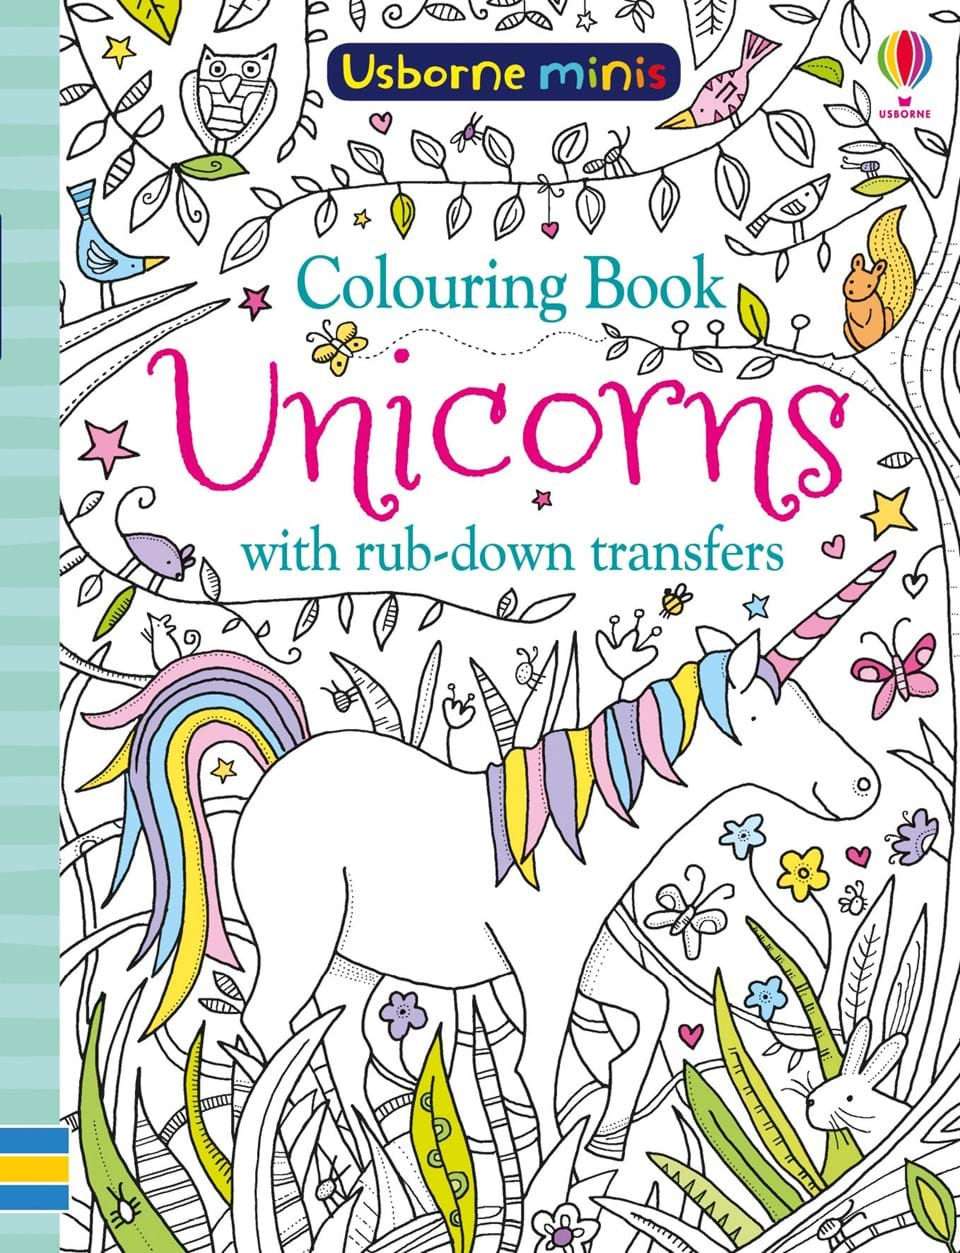 "Unicorns colouring book with rub-down transfers"" at Usborne Books at ..."